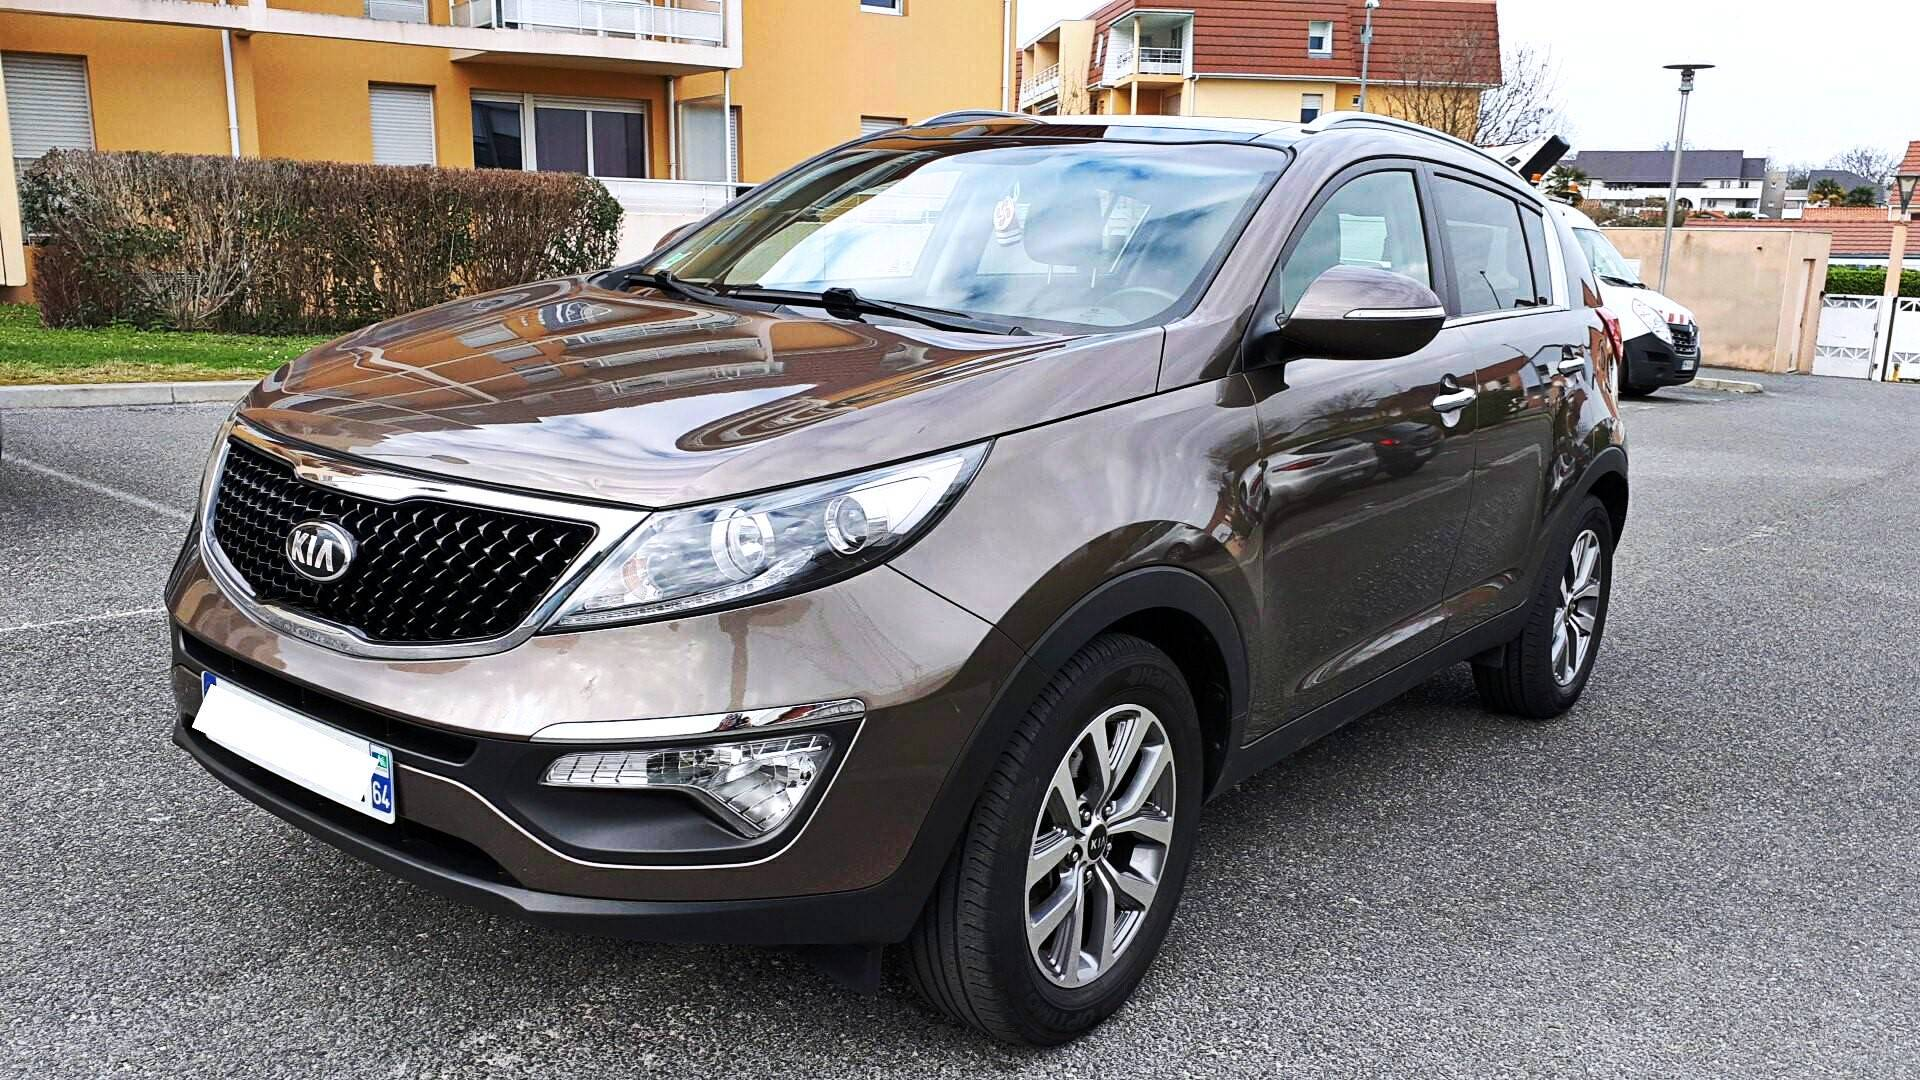 kia sportage d 39 occasion 1 7 crdi 115 active 4x2 isg bill re carizy. Black Bedroom Furniture Sets. Home Design Ideas